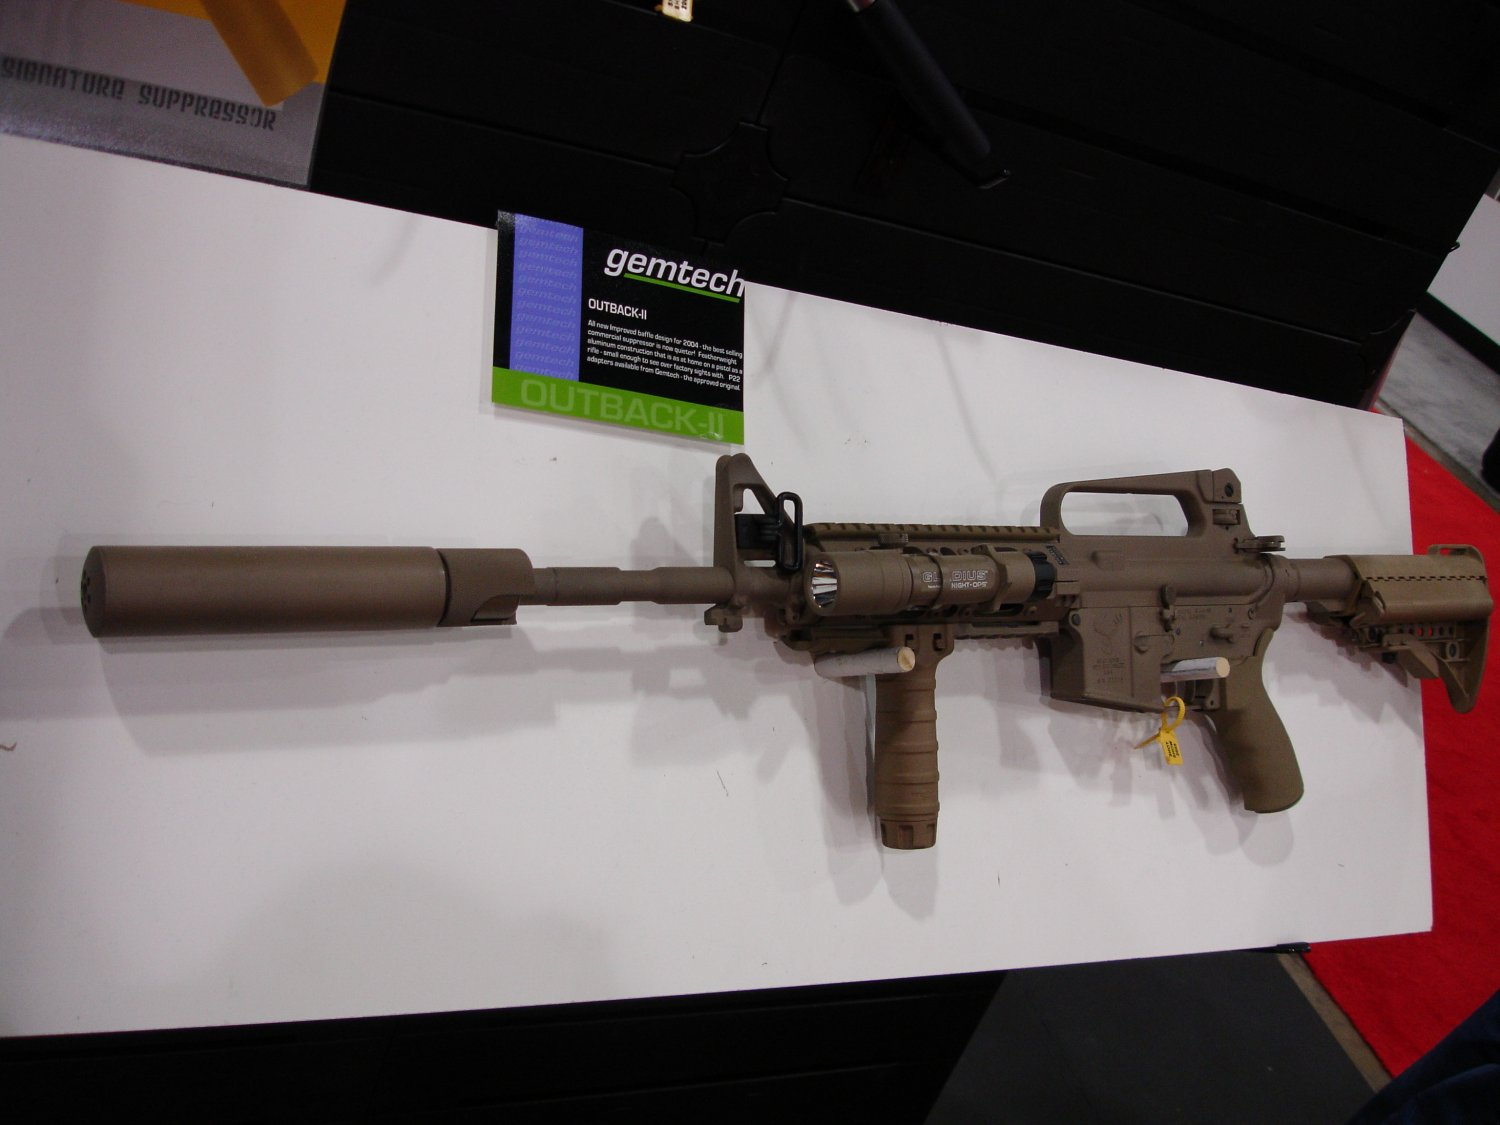 Gemtech 1 <!  :en  >SHOT Show Pics: Gemtech Sound and Signature Suppressors for Tactical Small Arms<!  :  >